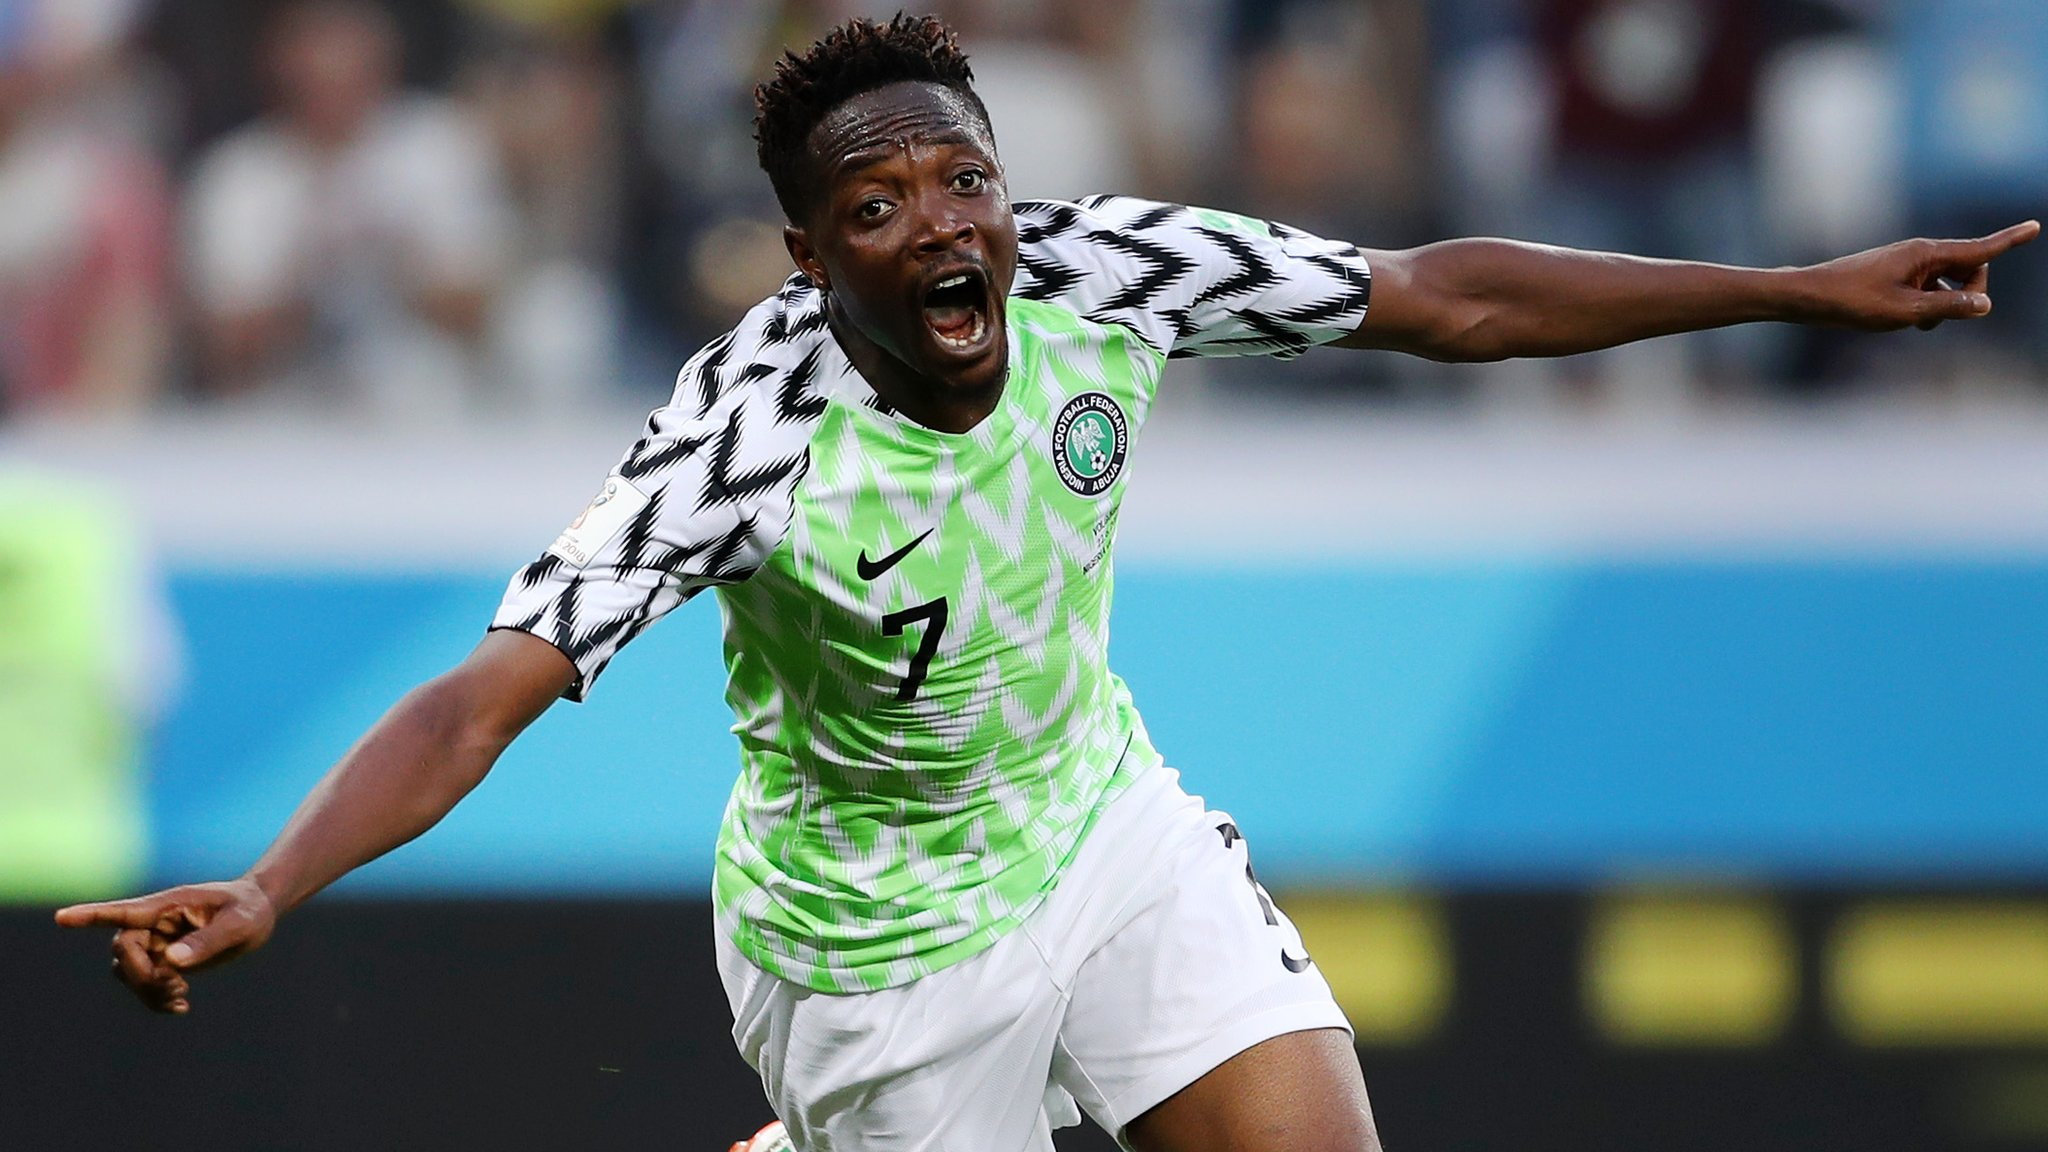 Highlights and report: Musa earns Nigeria win over Iceland - and gives Argentina hope